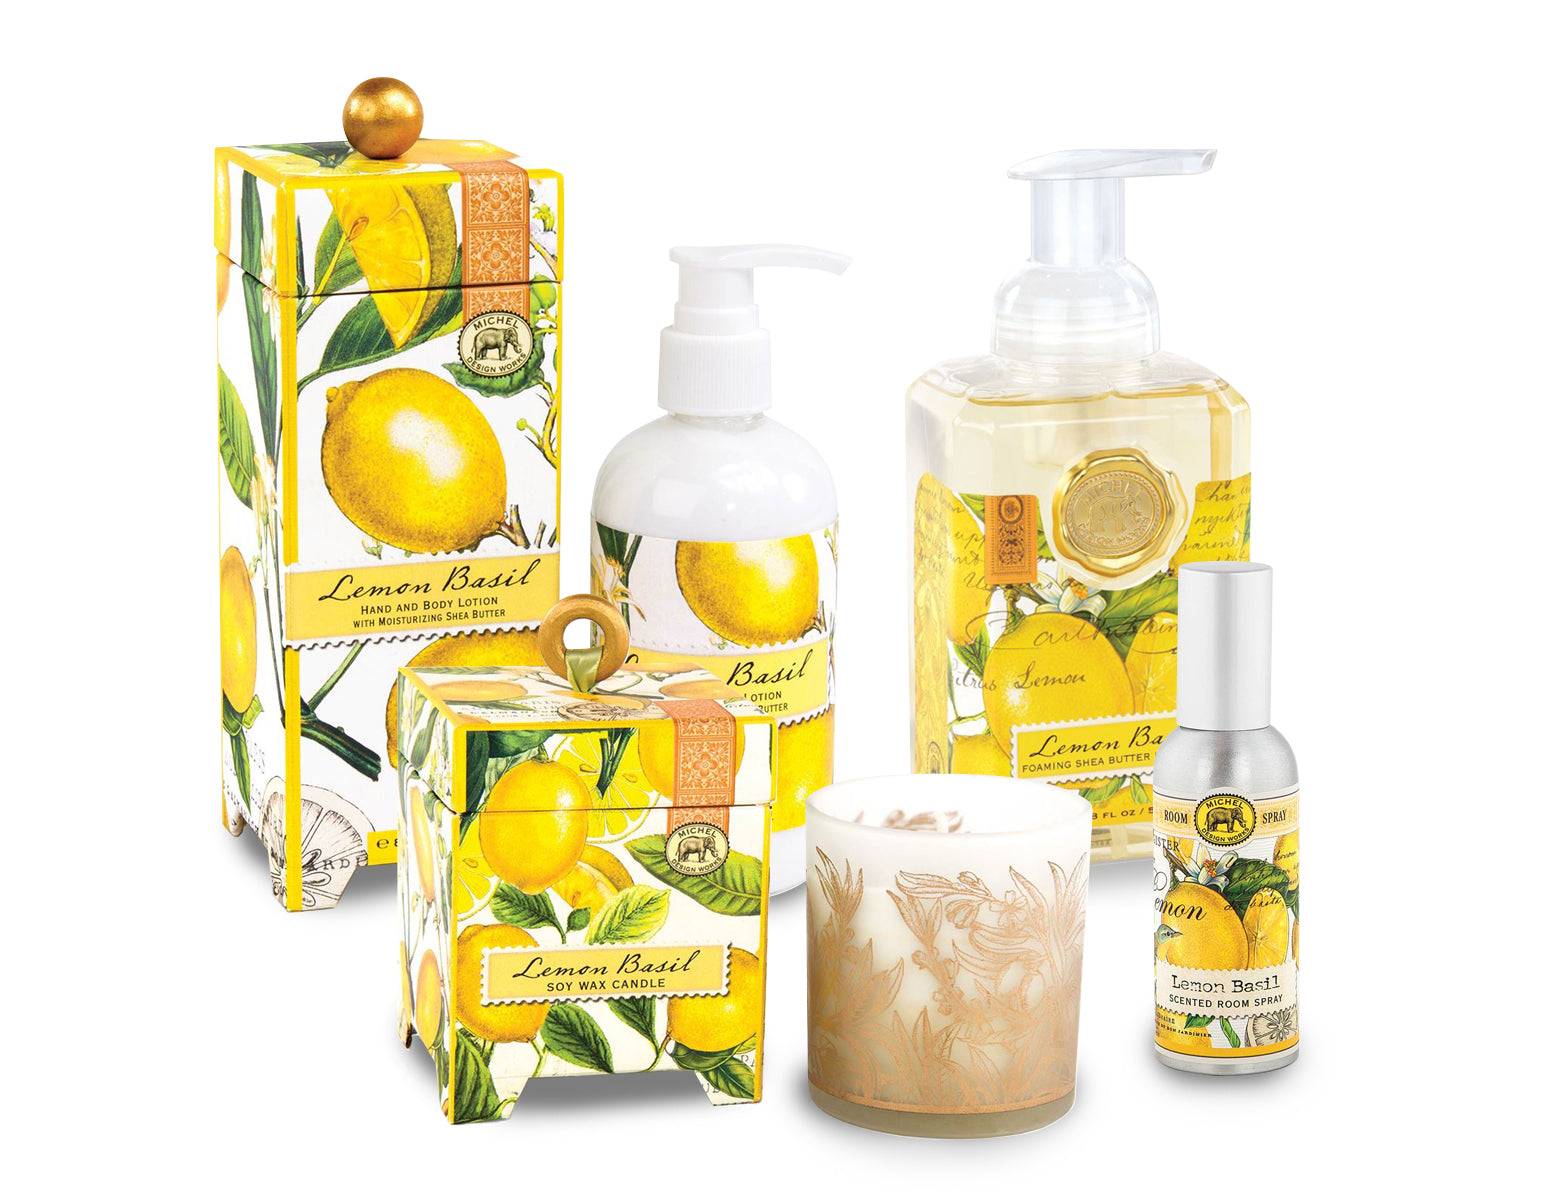 Lemon Basil Bath Set